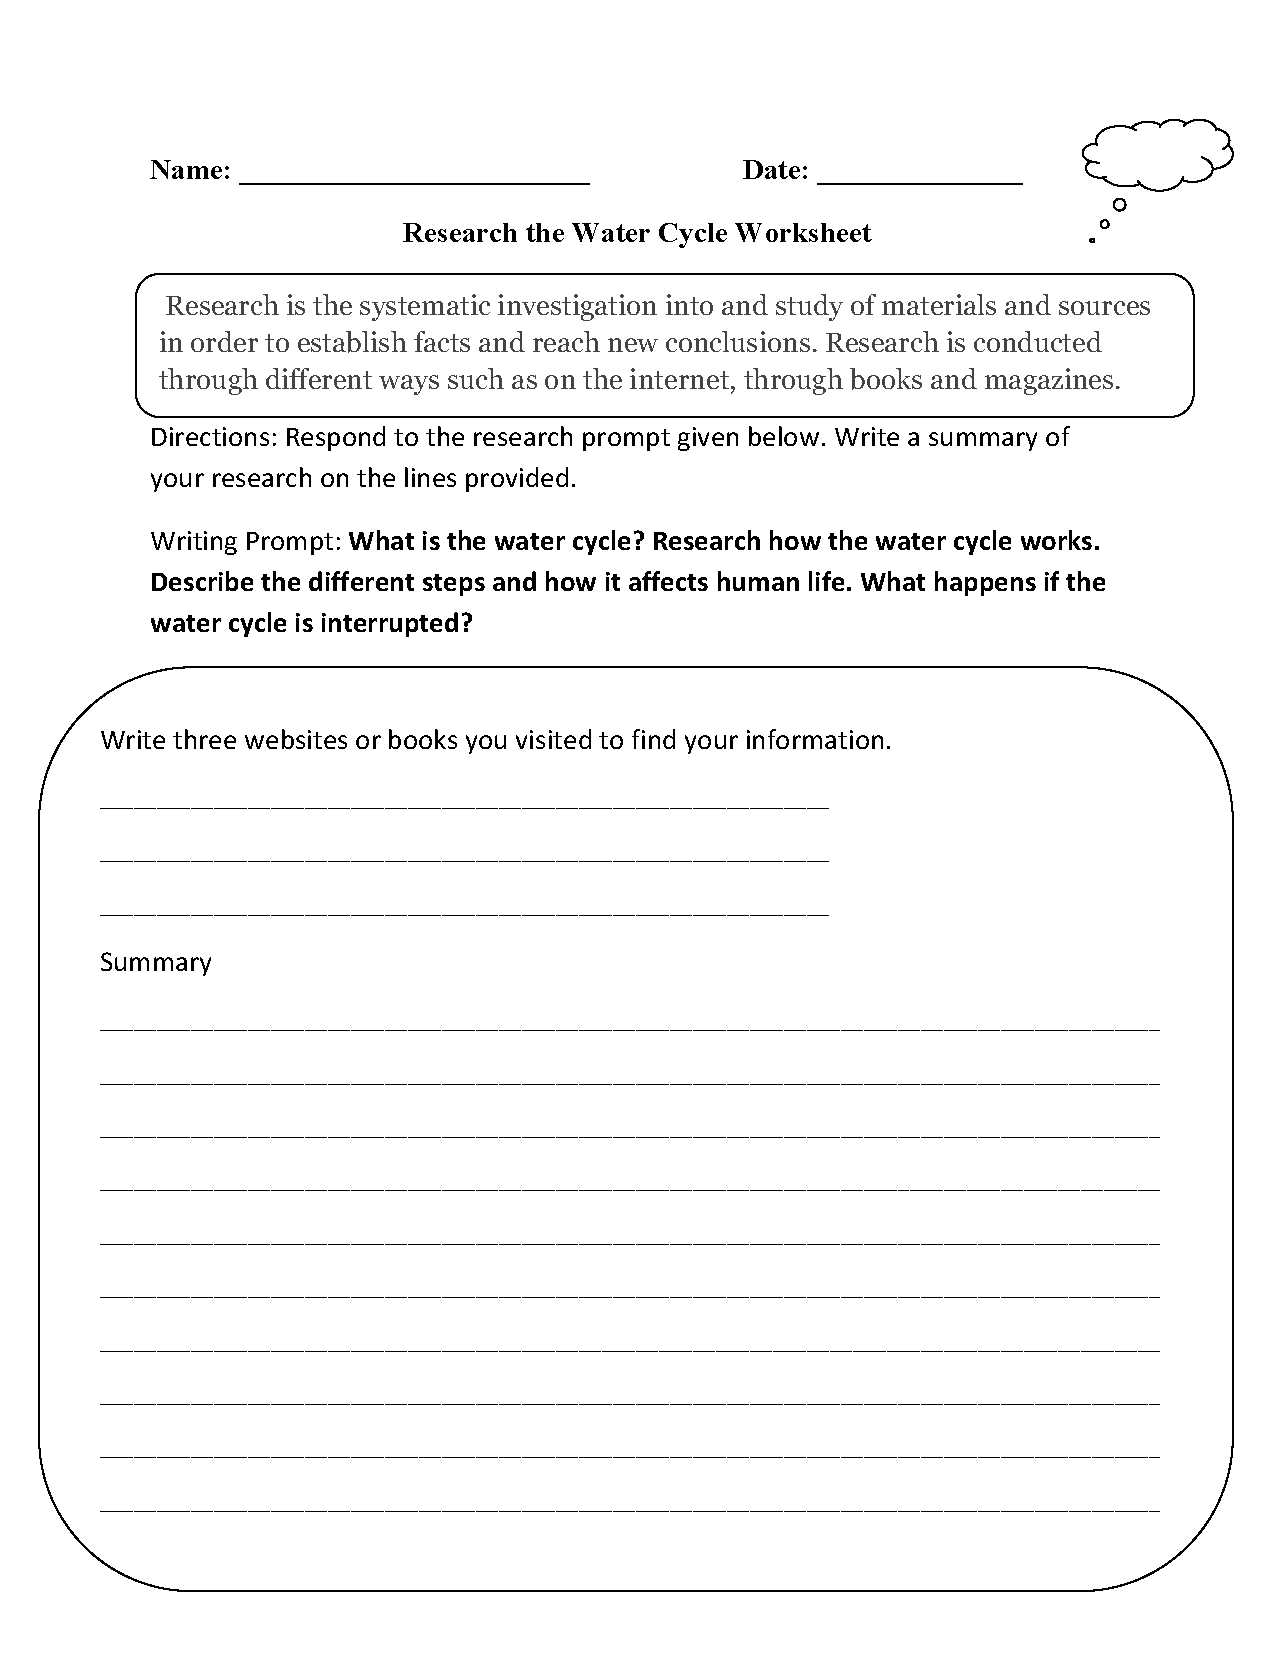 Worksheets The Water Cycle Worksheet research worksheets the water cycle worksheet worksheet